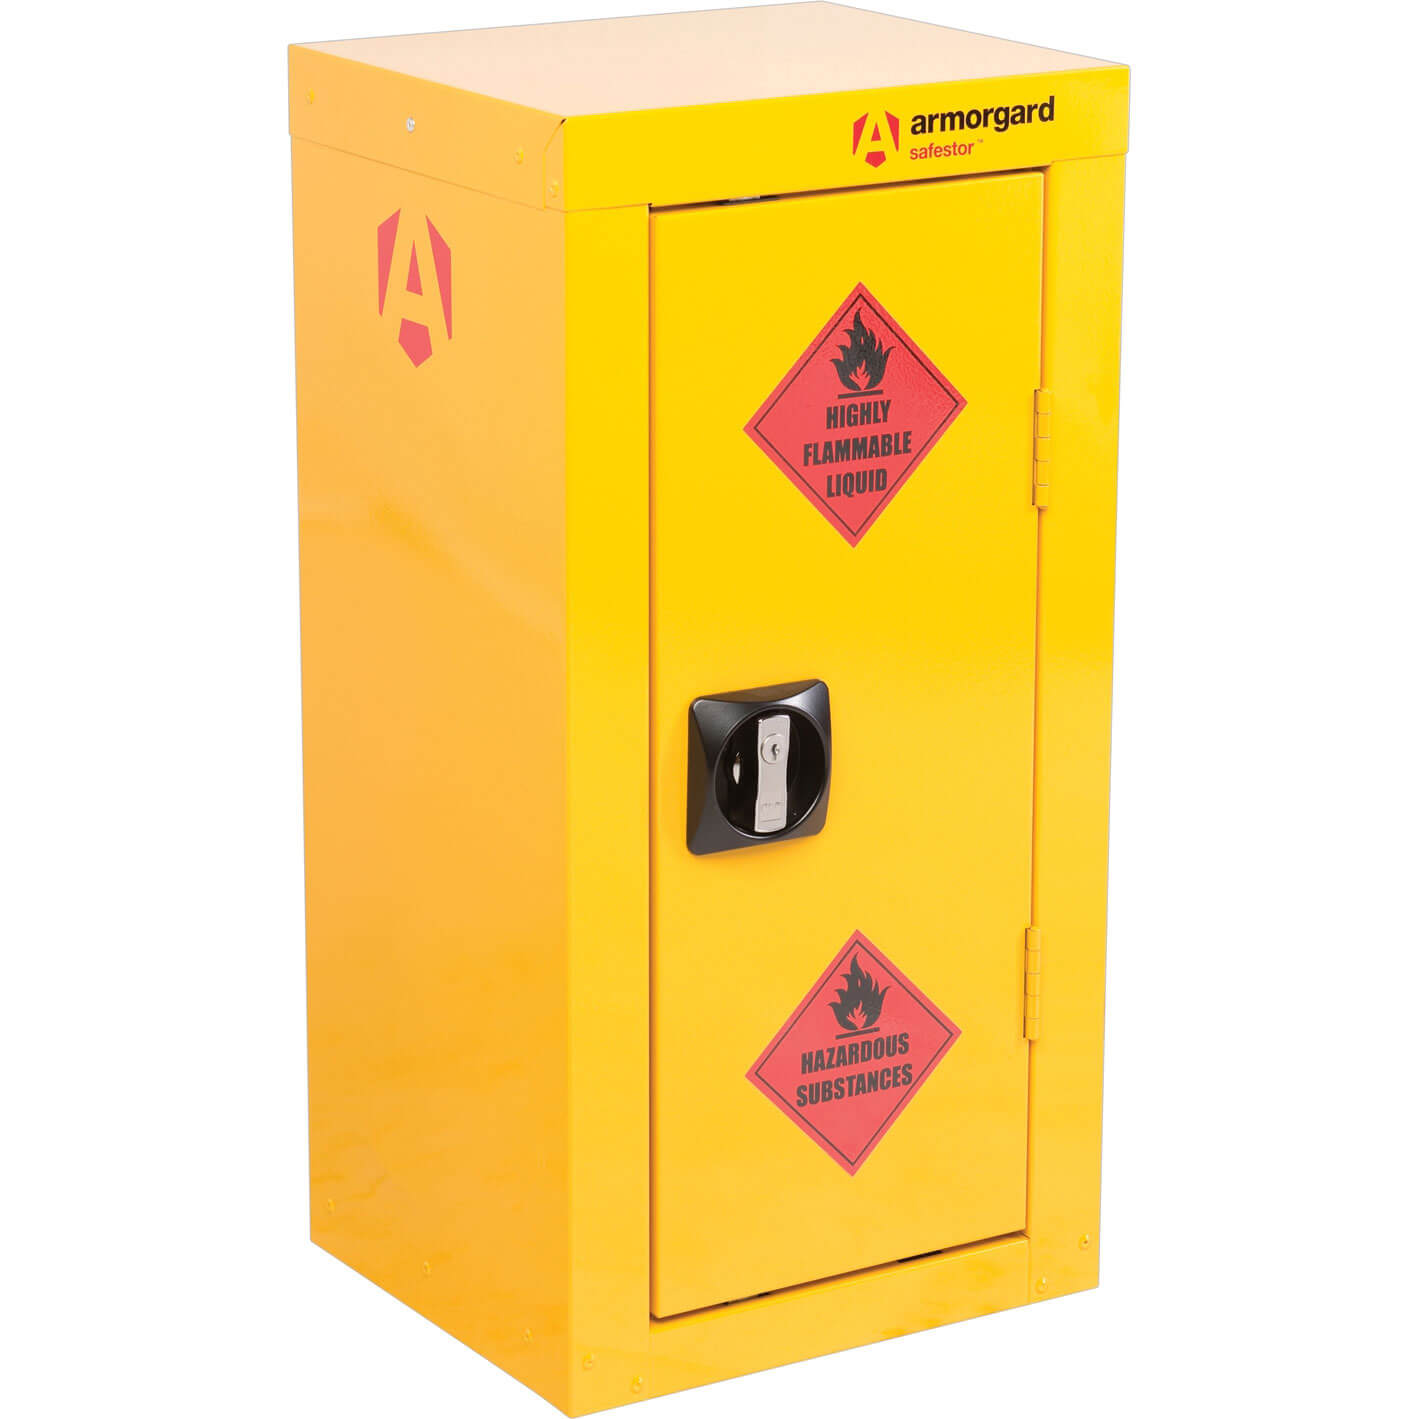 Armorgard Safestor Hazardous Materials Cabinet 350mm x 300mm x 700mm